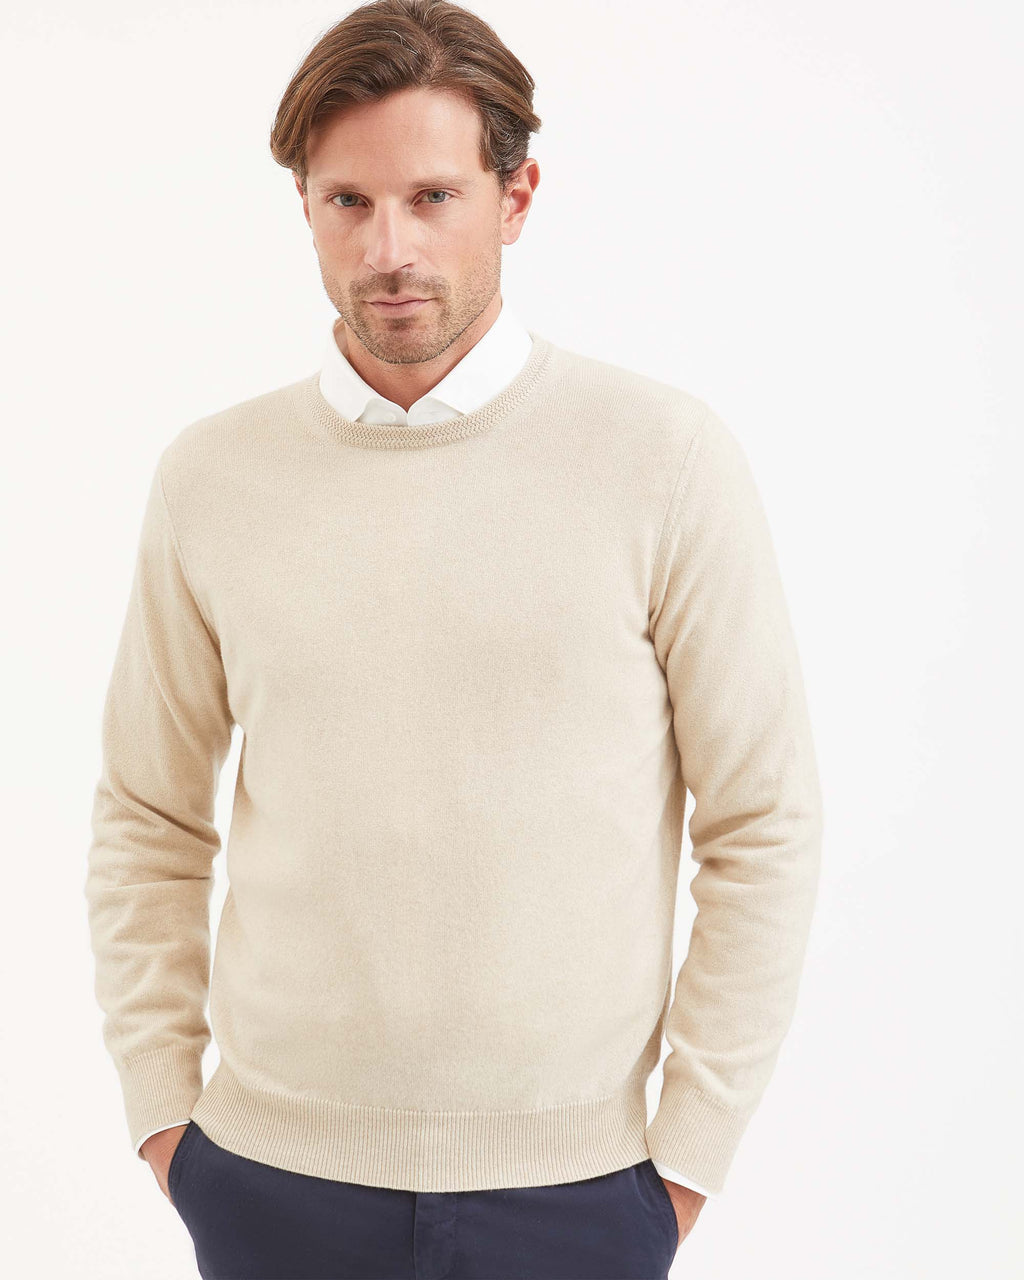 Mens Natural beige kid cashmere round-neck sweater